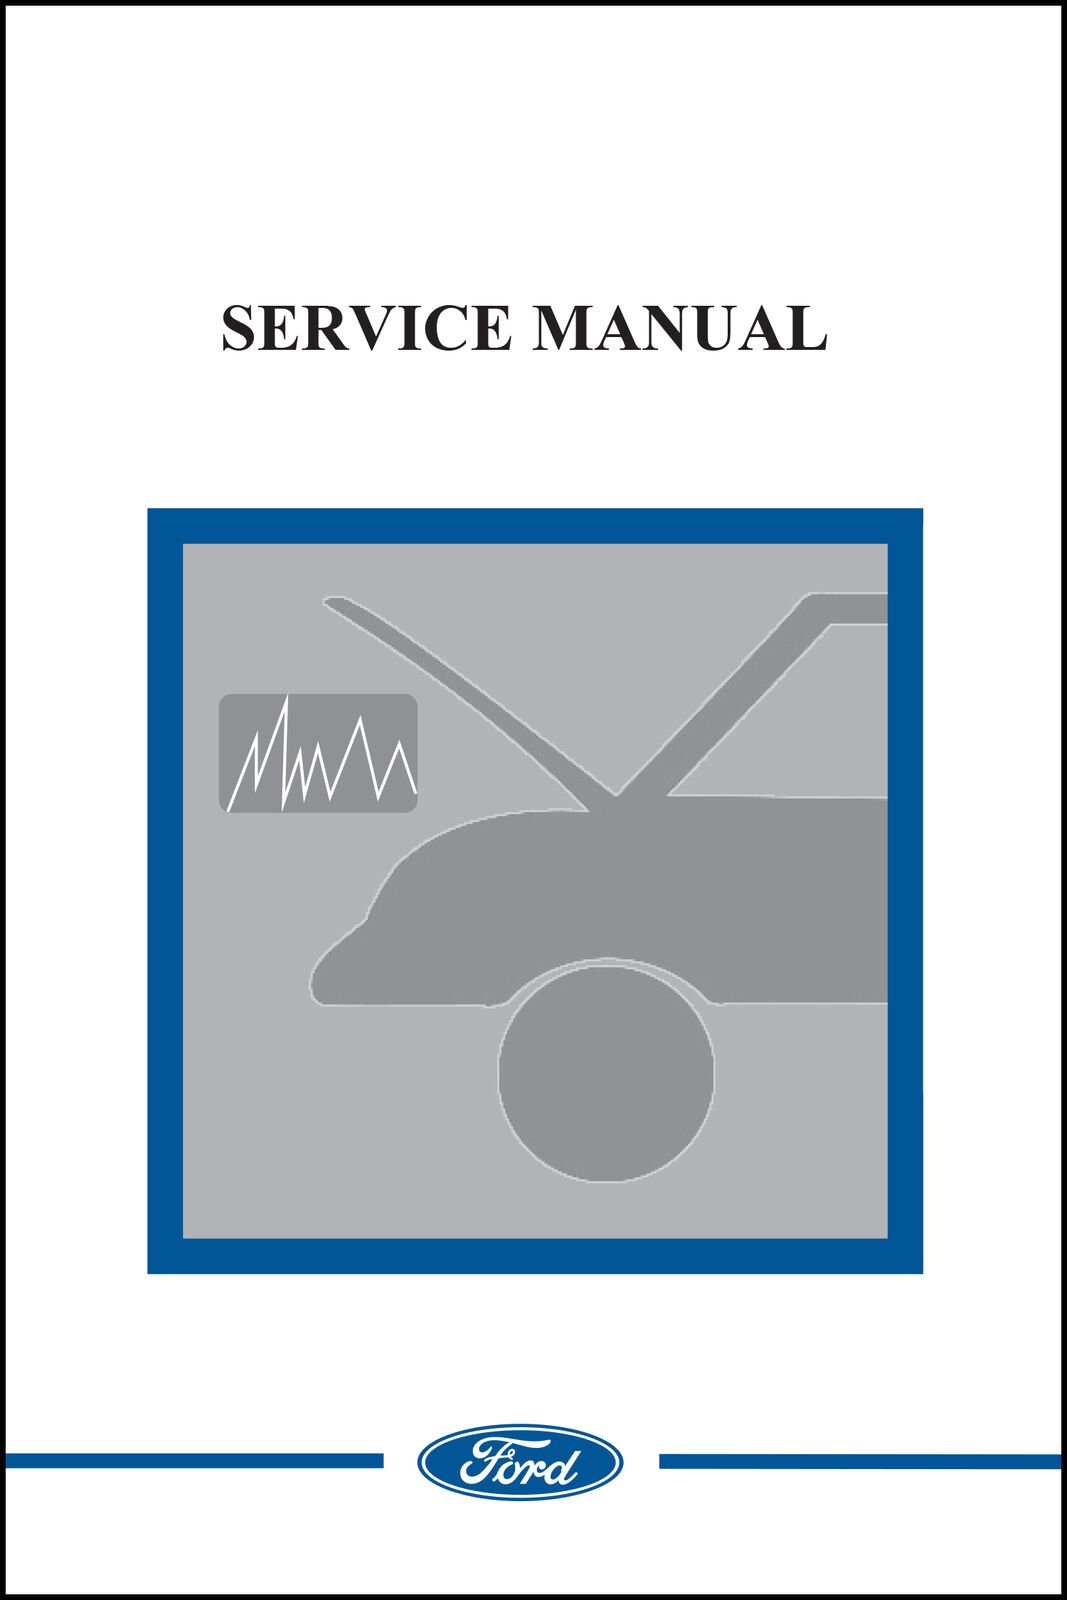 Ford 1990 Mustang Electrical & Vacuum Troubleshooting Manual Service Shop  Repair 1 of 1FREE Shipping ...